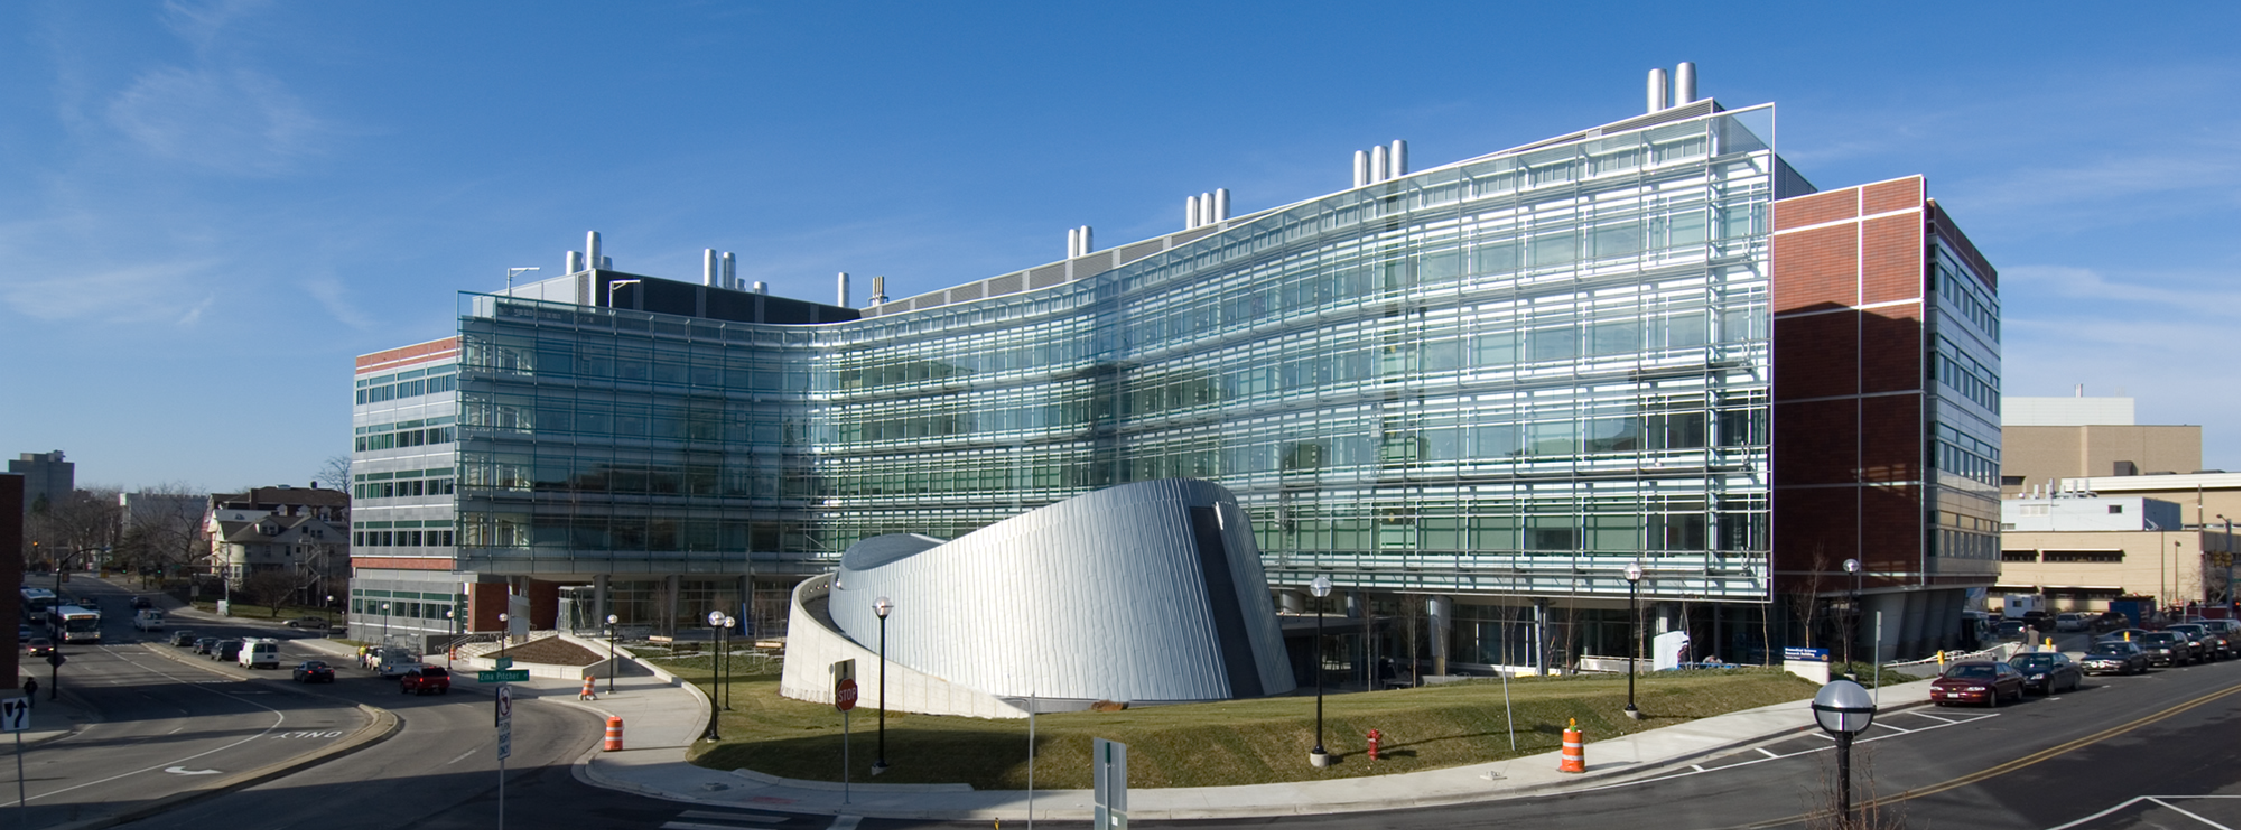 Biomedical Science Research Building